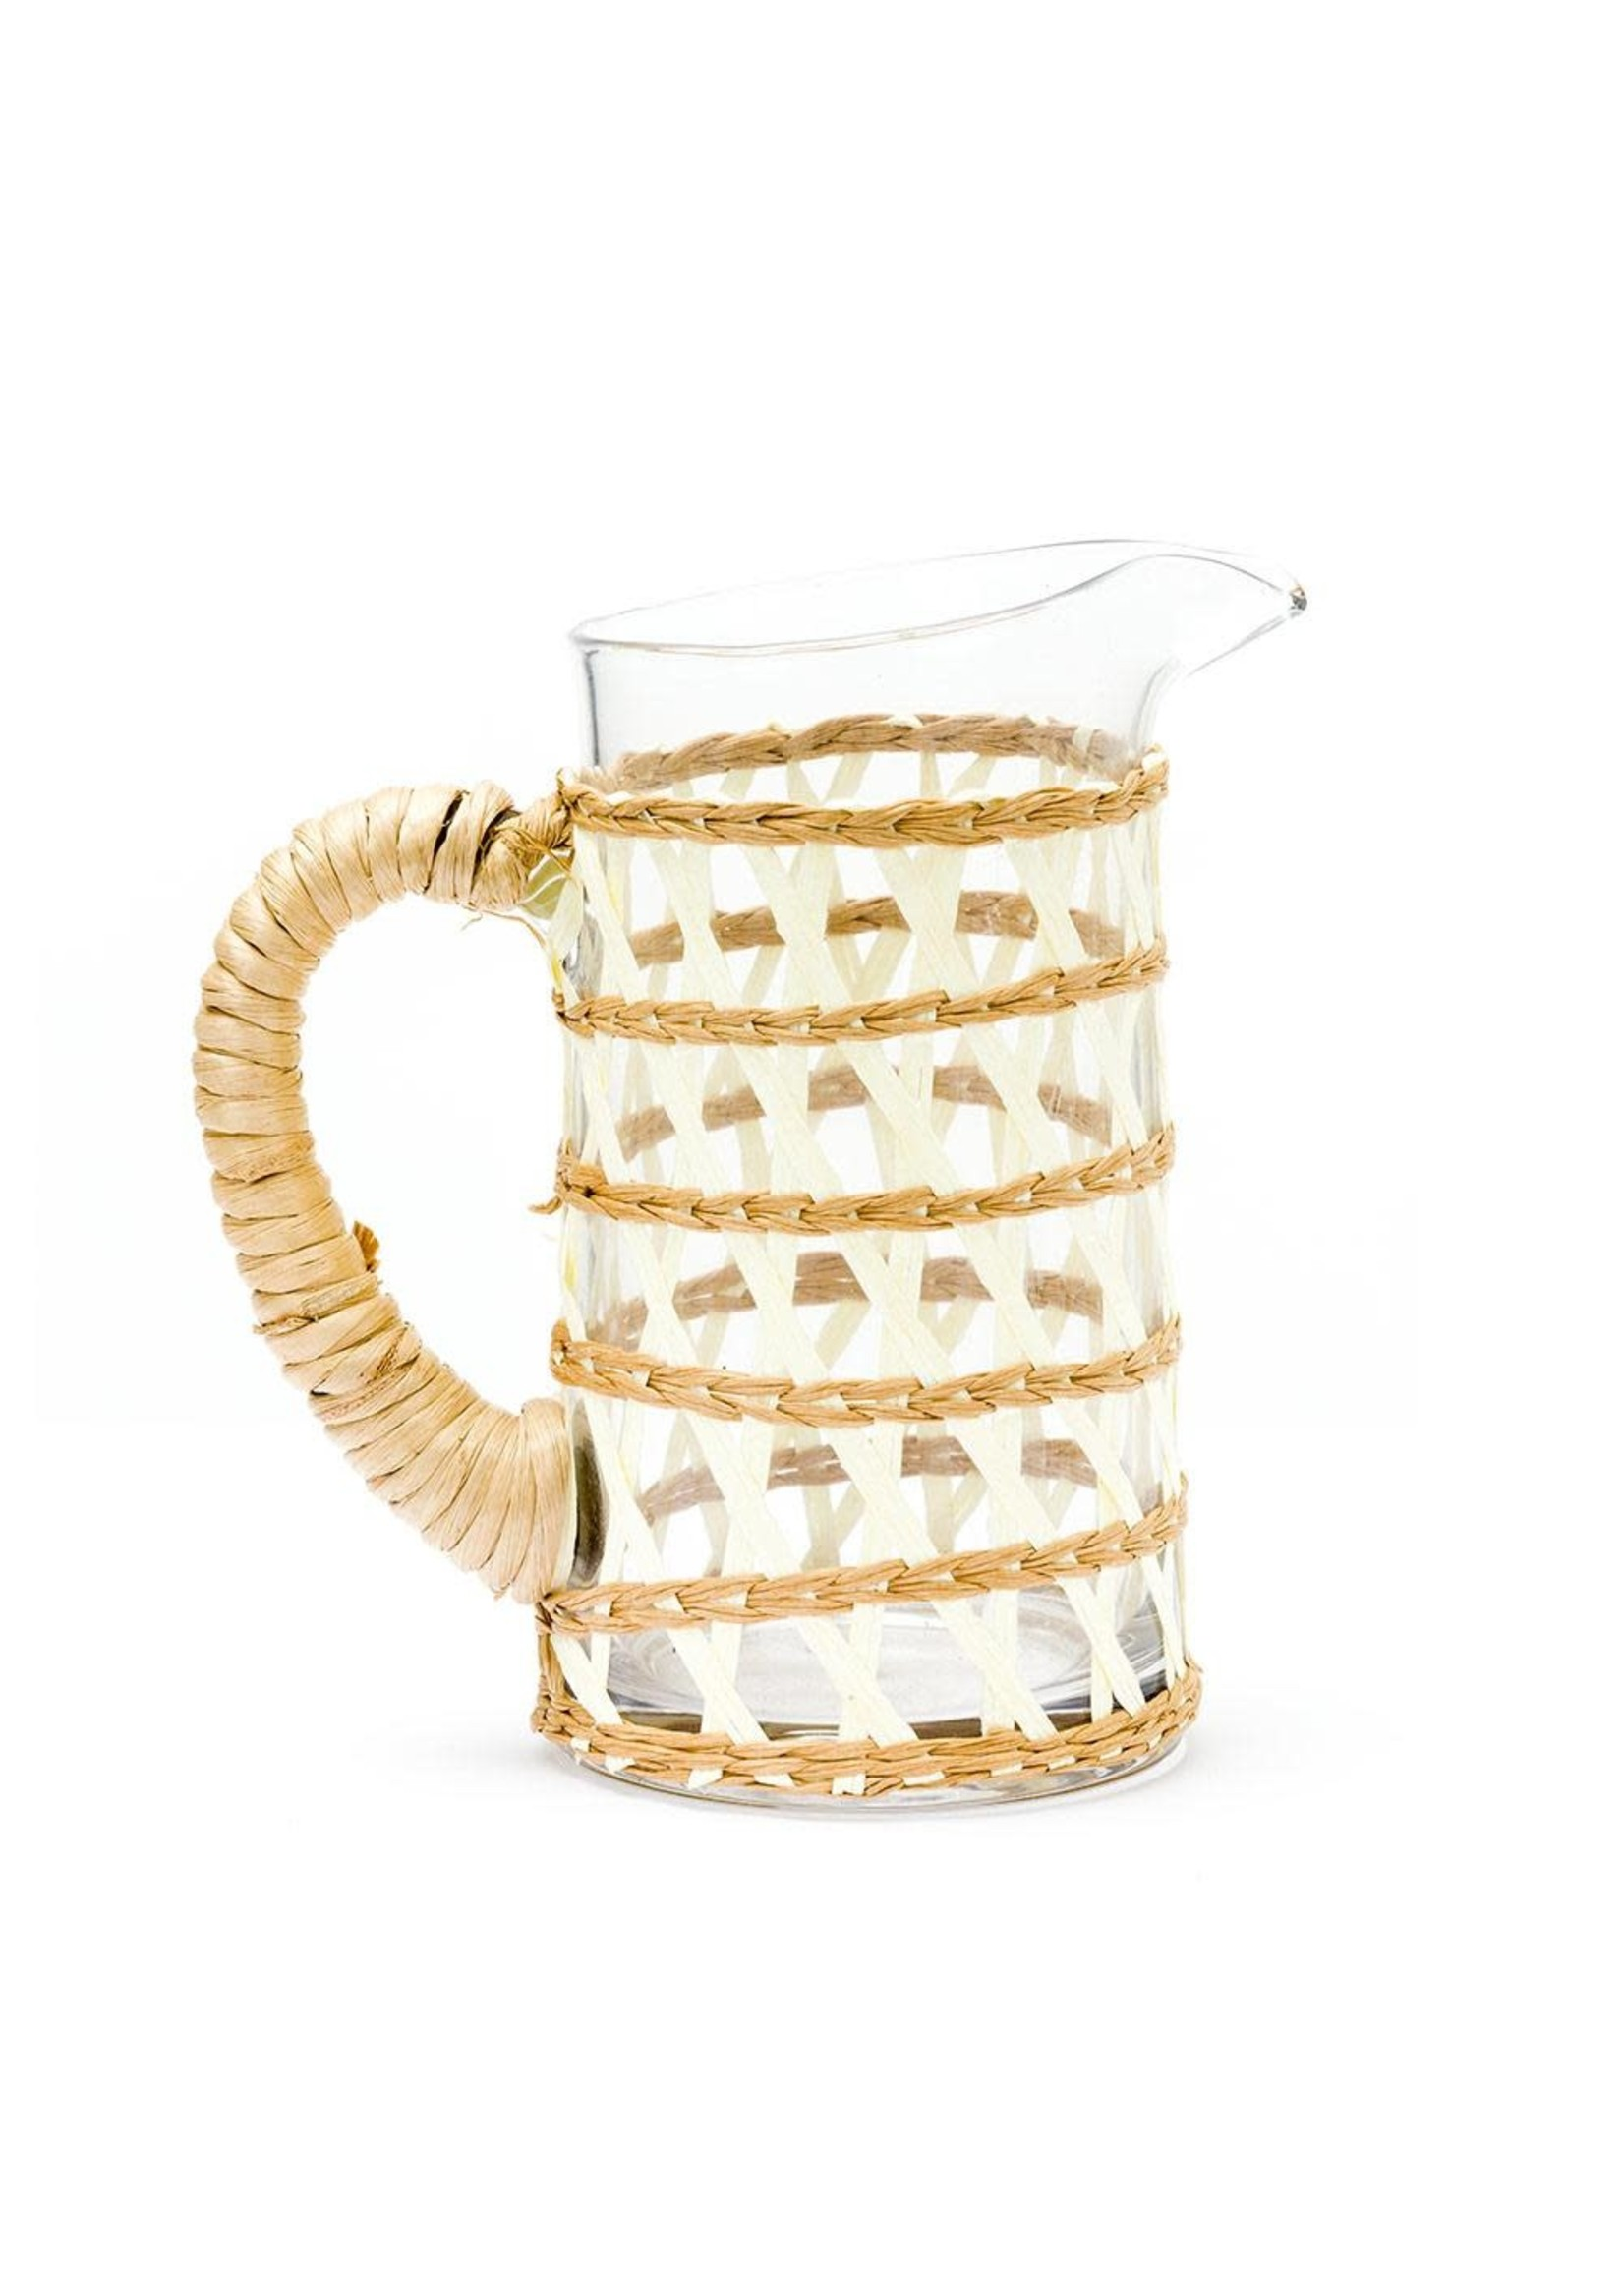 Amanda Lindroth Island Wrapped Pitcher Small - White